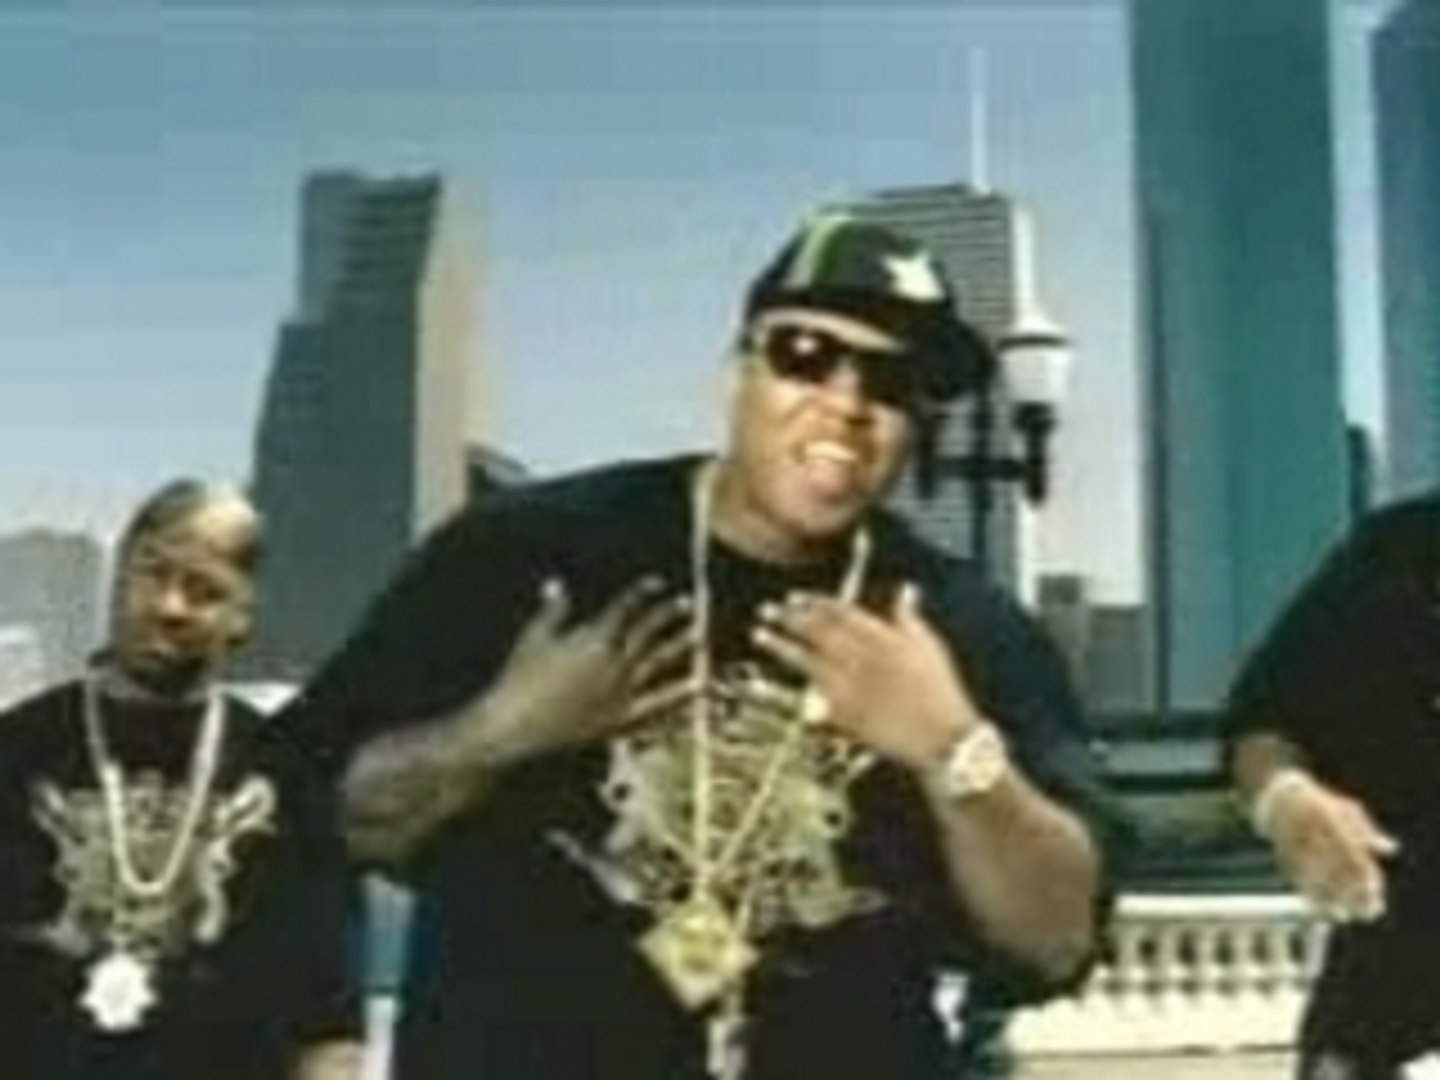 Boss Hogg Outlawz ft Slim Thug - Recognize A Playa